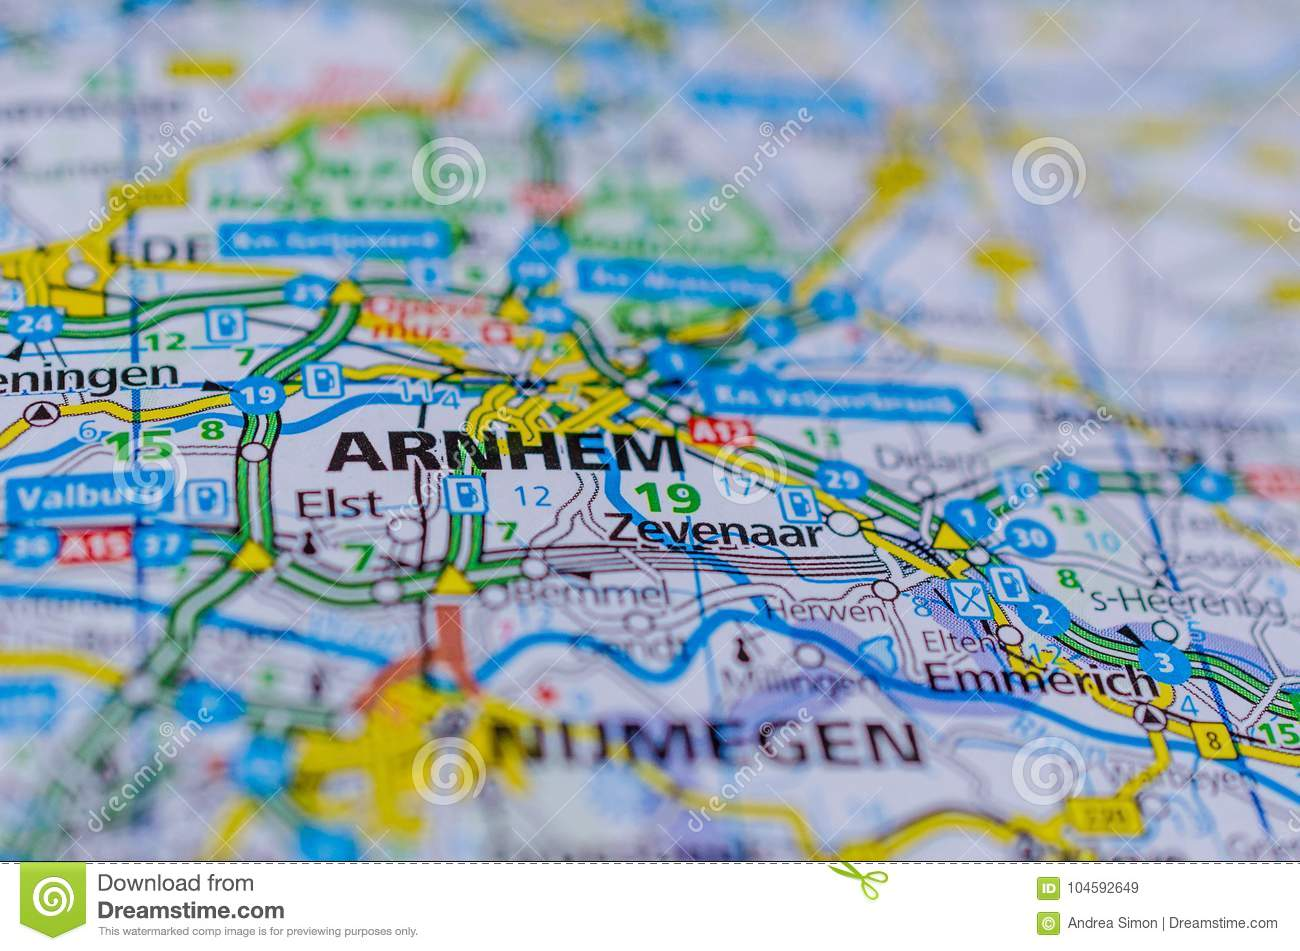 Arnhem on map stock image Image of cosmopolitan coordinates